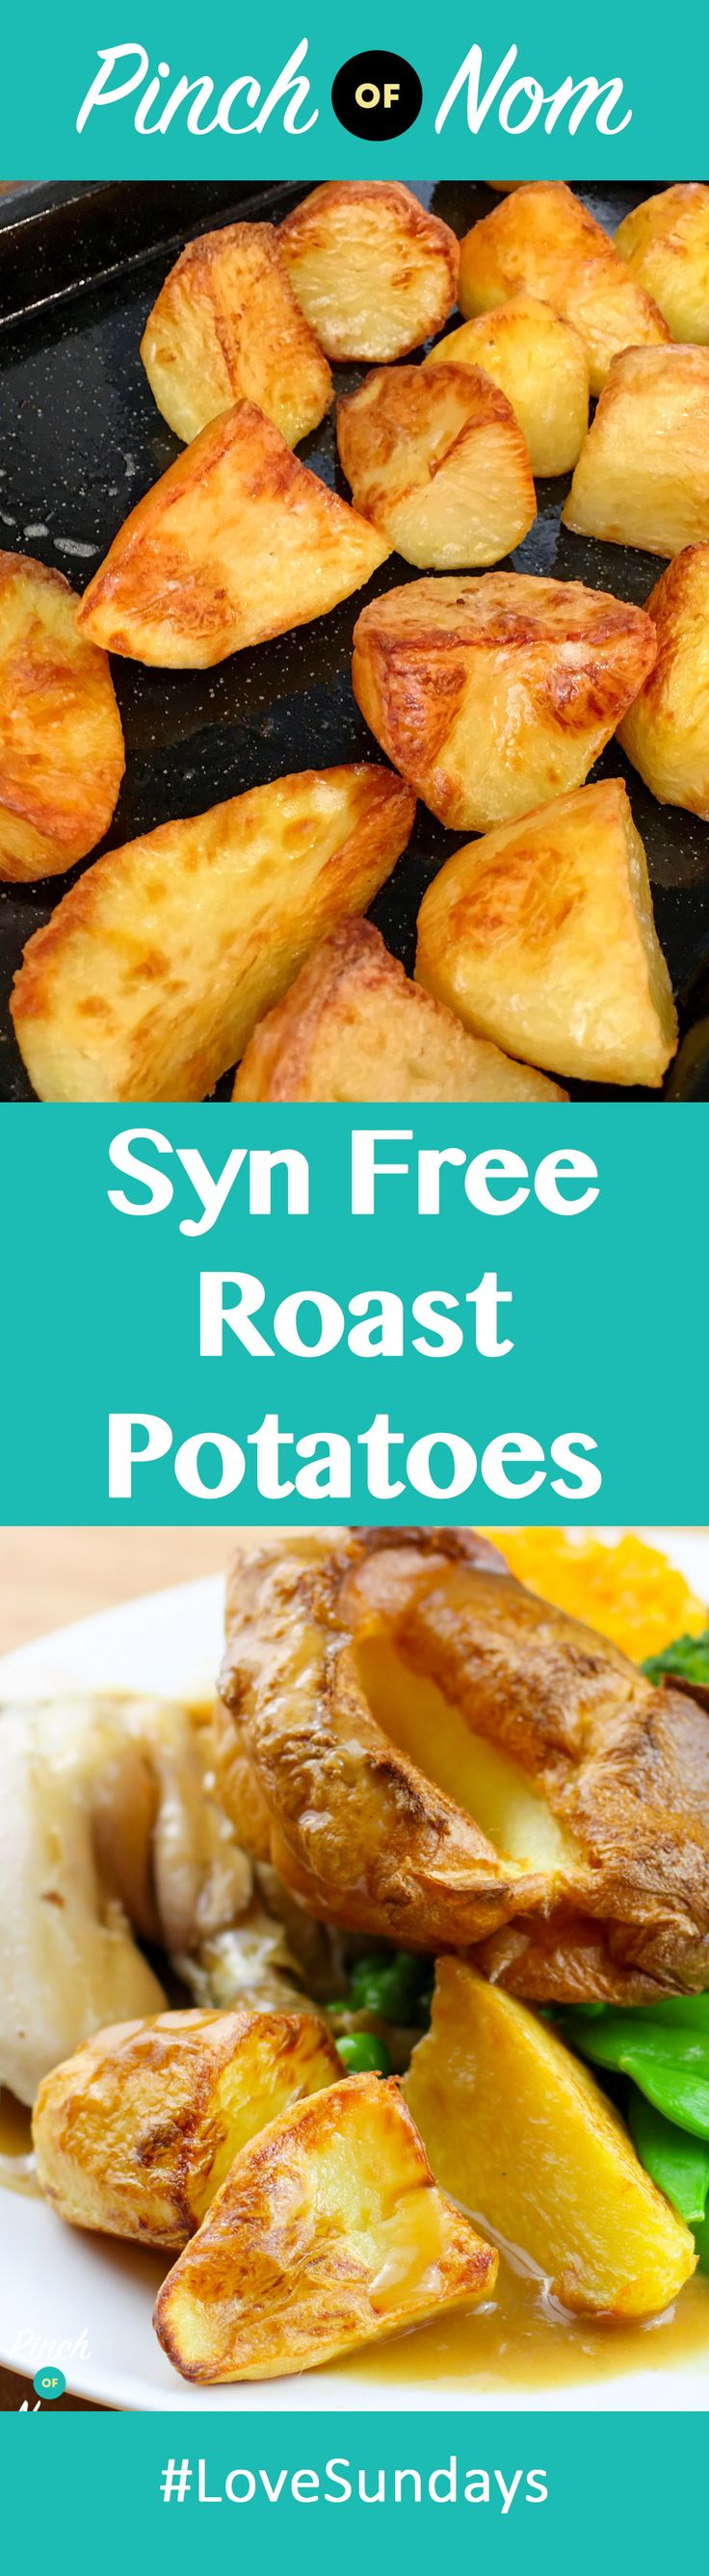 Syn Free Roast Potatoes | Slimming World